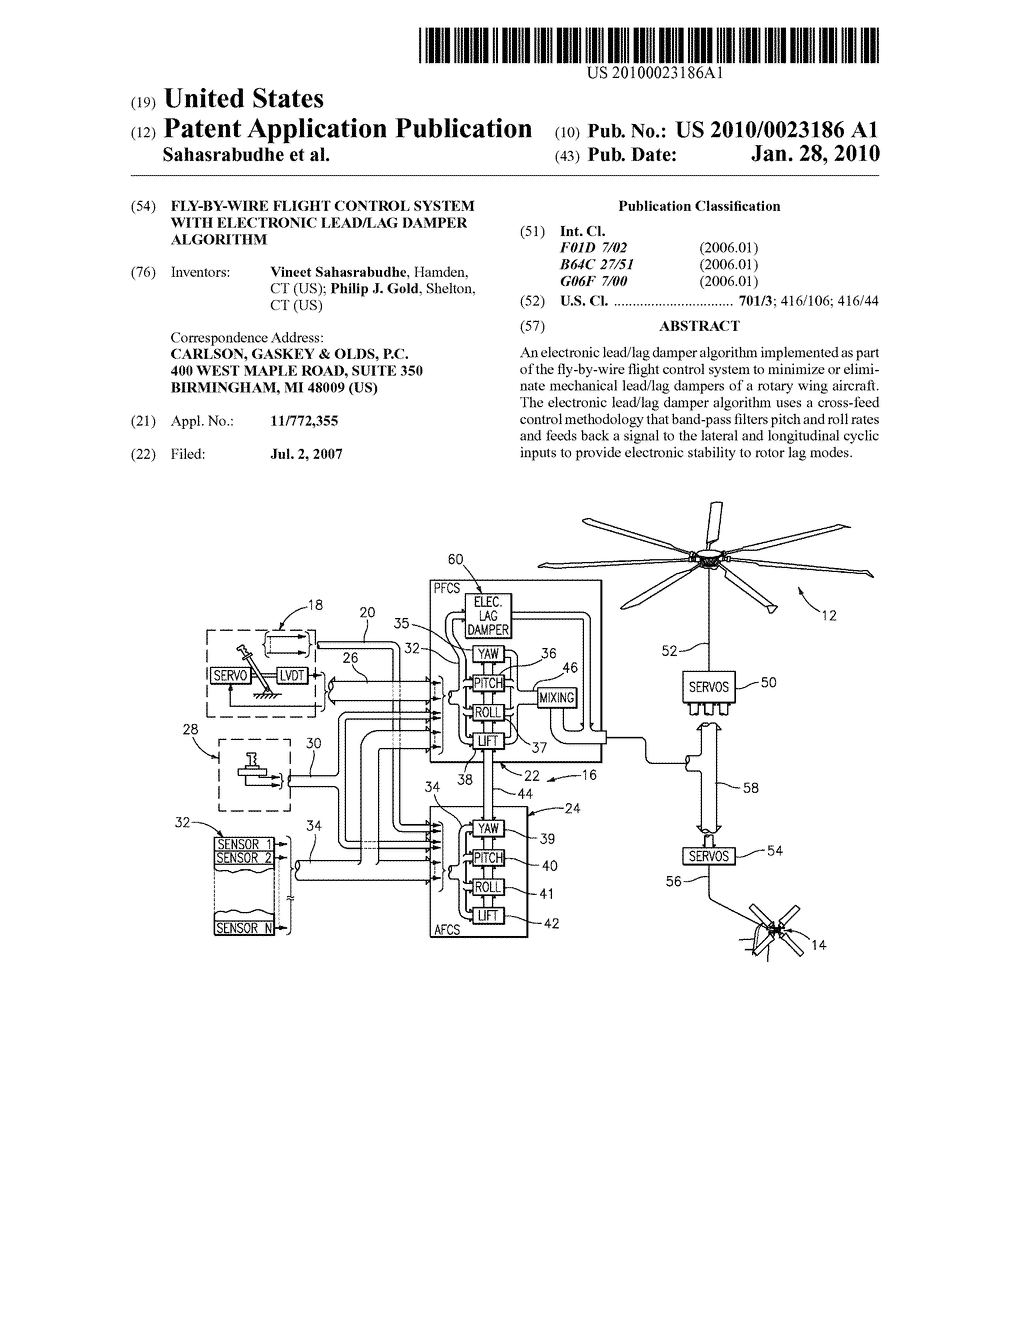 [GJFJ_338]  FLY-BY-WIRE FLIGHT CONTROL SYSTEM WITH ELECTRONIC LEAD/LAG DAMPER ALGORITHM  - diagram, schematic, and image 01 | Lead Lag Wiring Diagram |  | Patents